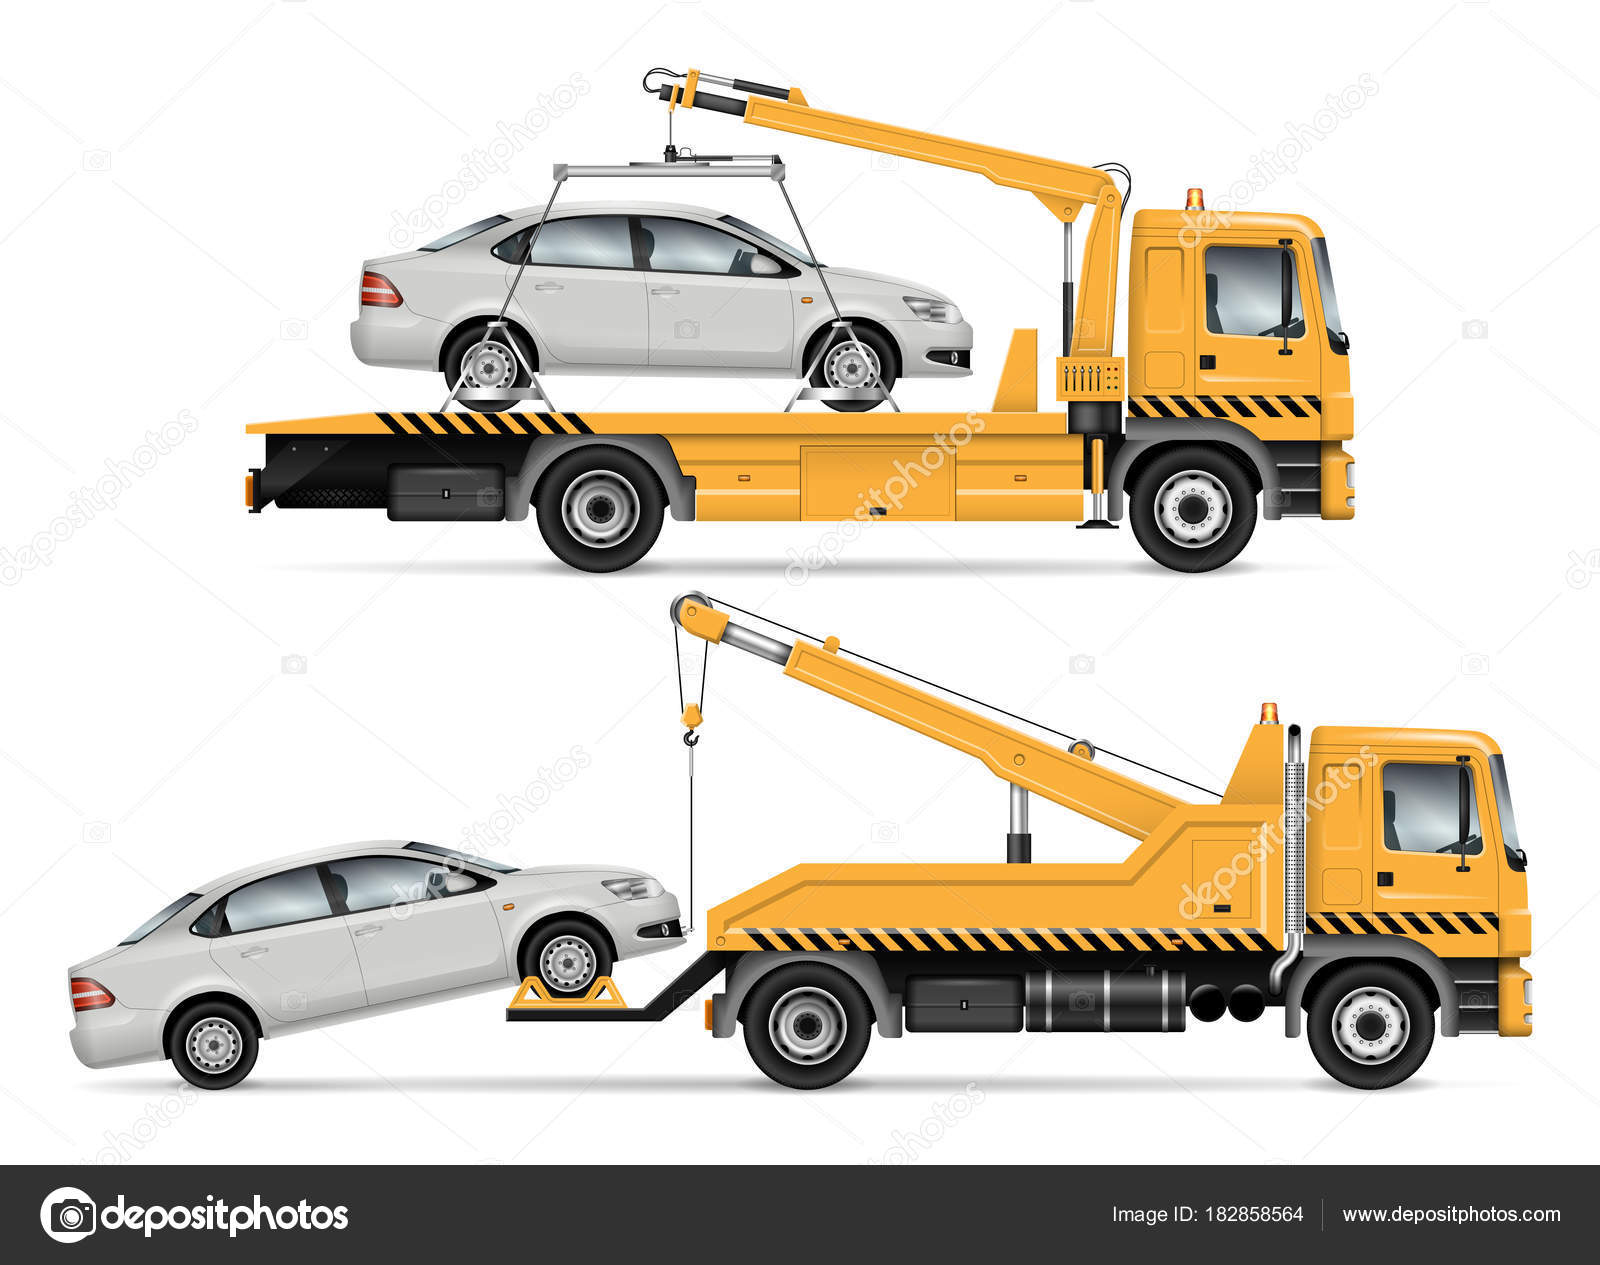 Tow Truck Tow Truck Vector Illustration Stock Vector Imgvector 182858564